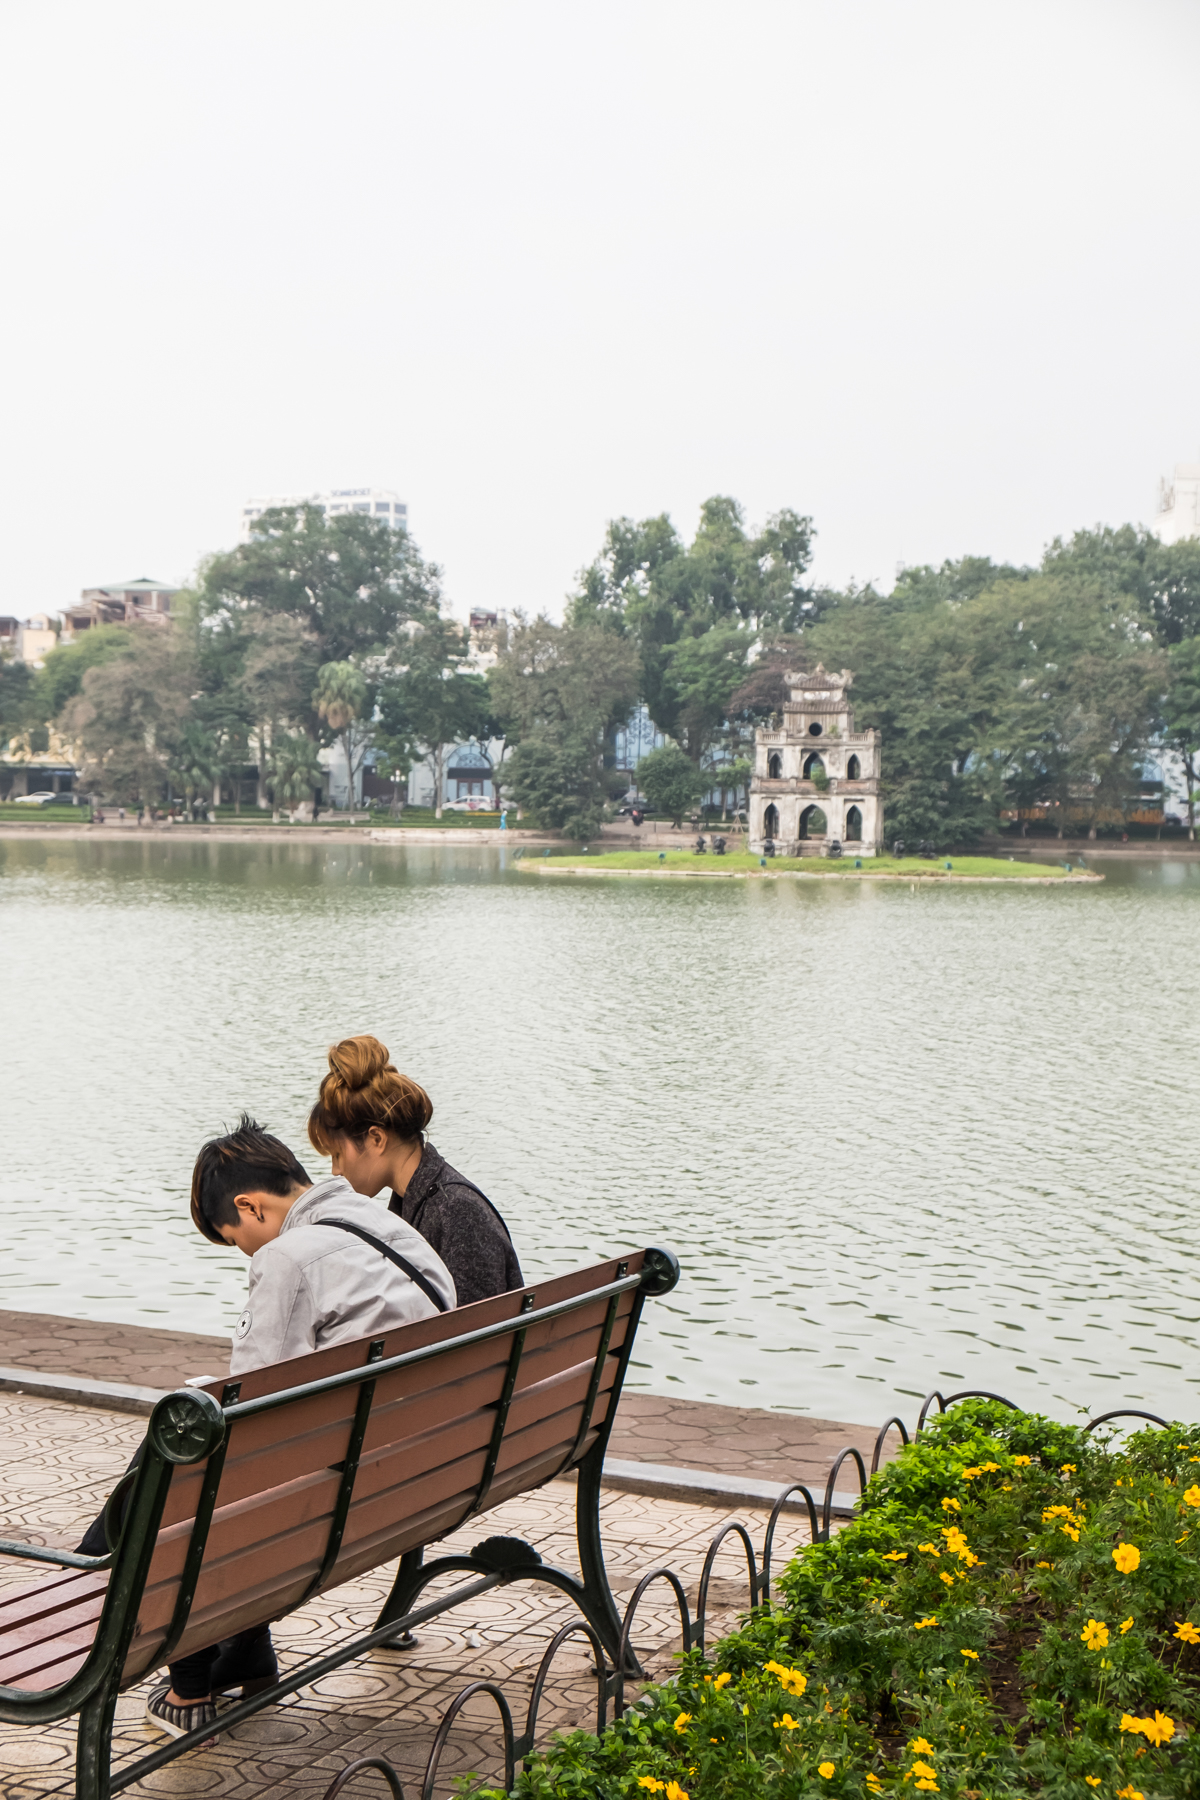 A couple sits by Hoan Kiem Lake in Hanoi, Vietnam - Tháp Rùa also called Tortoise Tower in the distance.